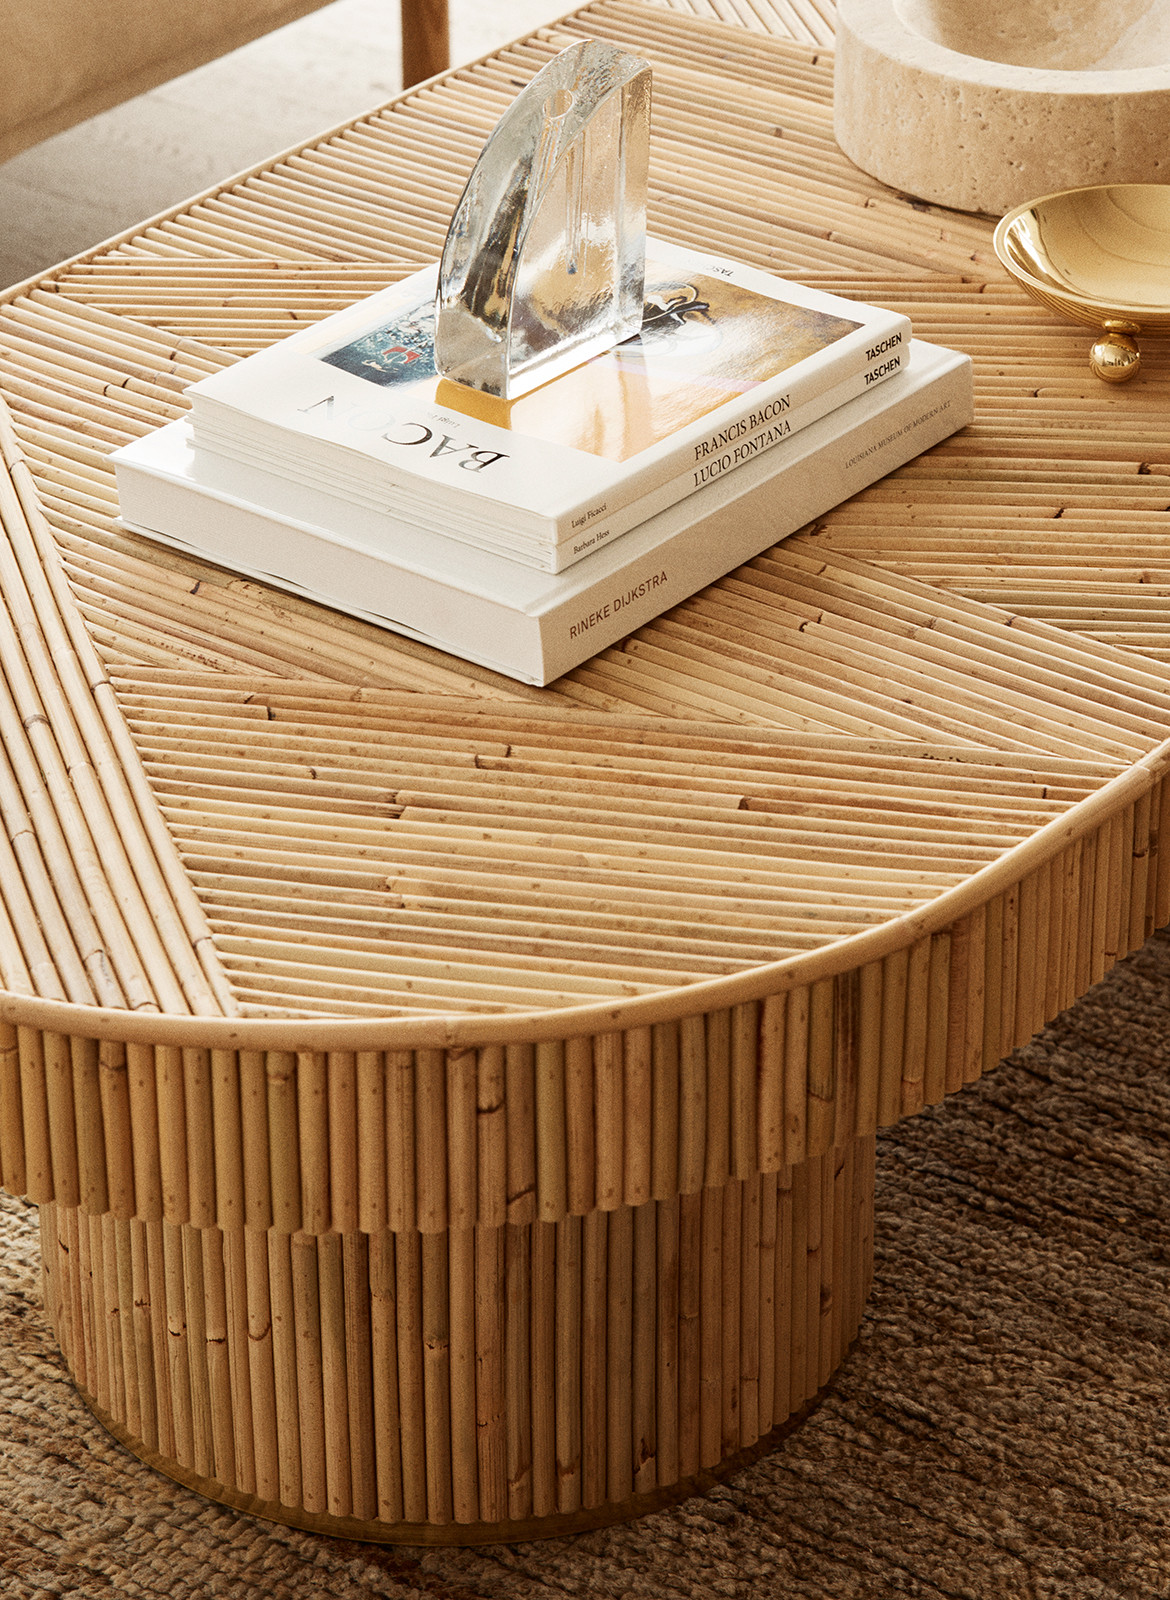 Golden Sarah Ellison Studio CC Dave Wheeler coffee table details